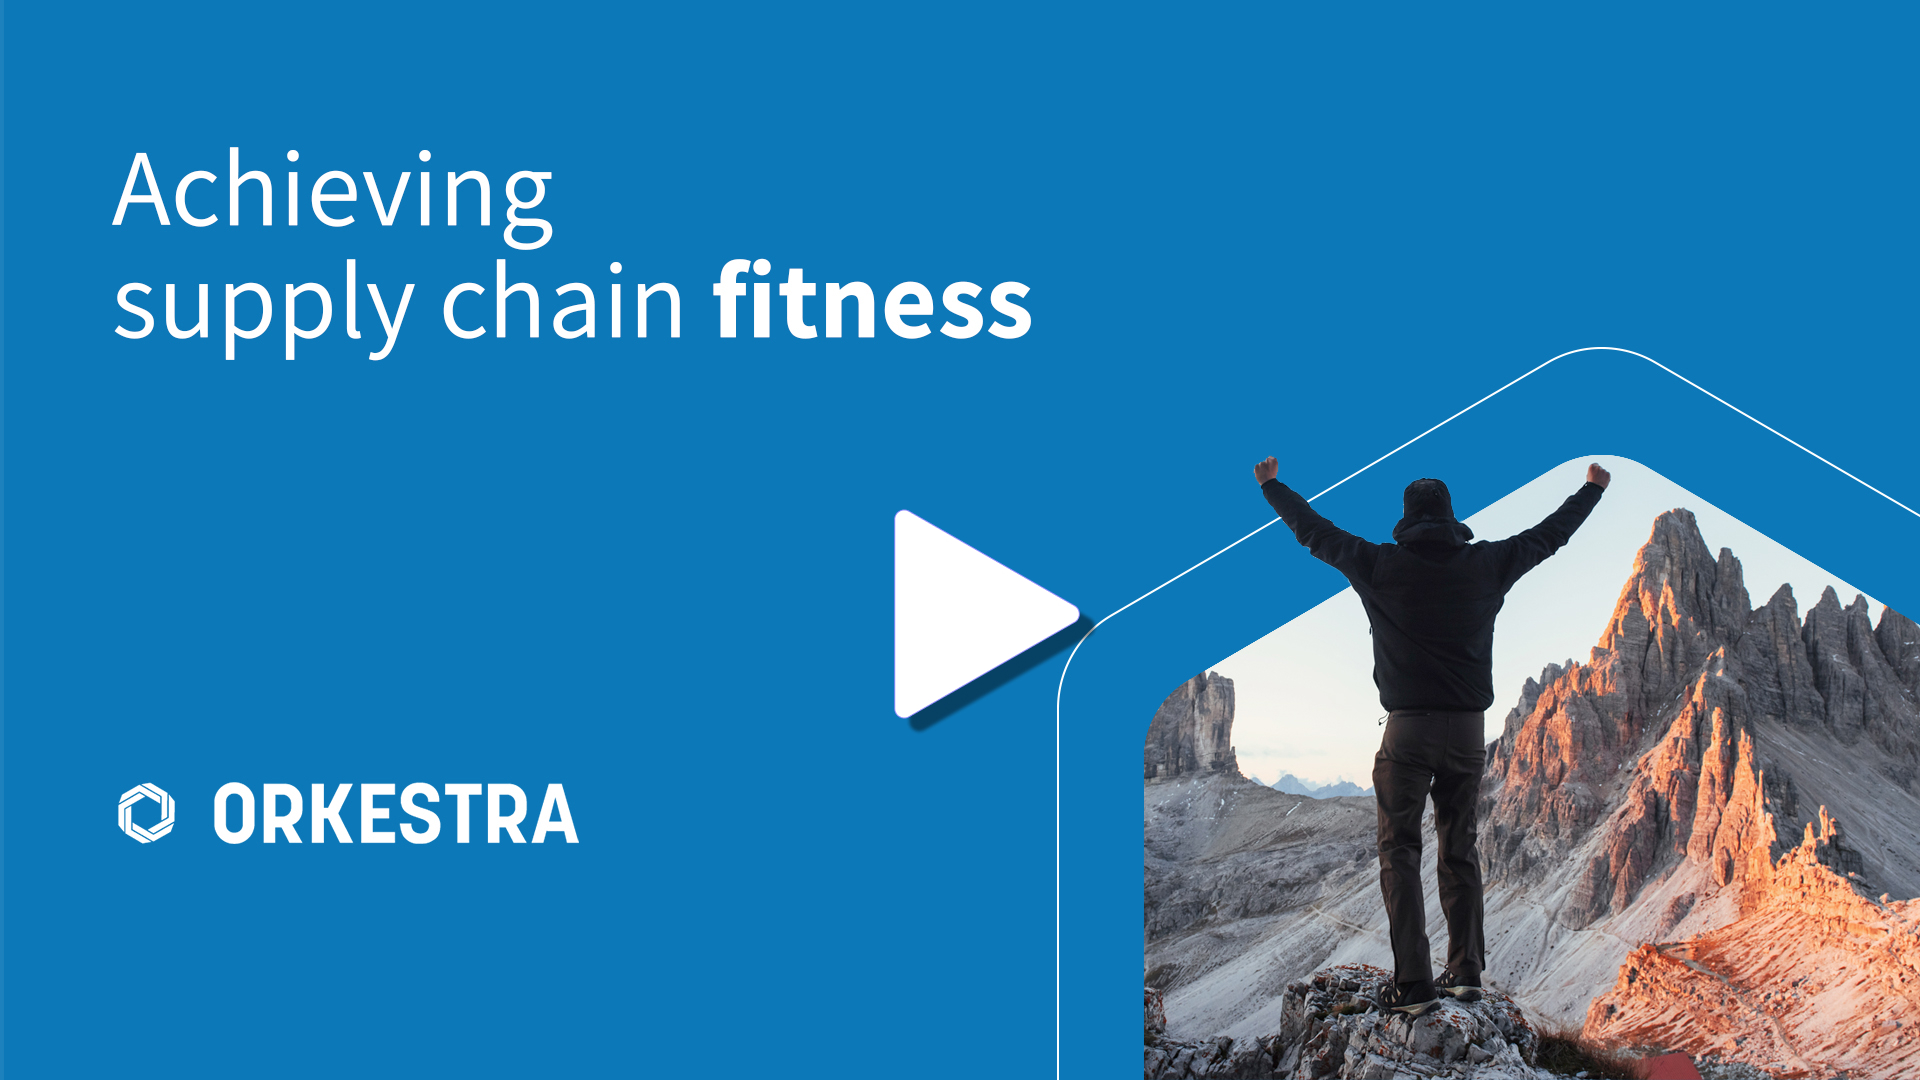 Achieving supply chain fitness